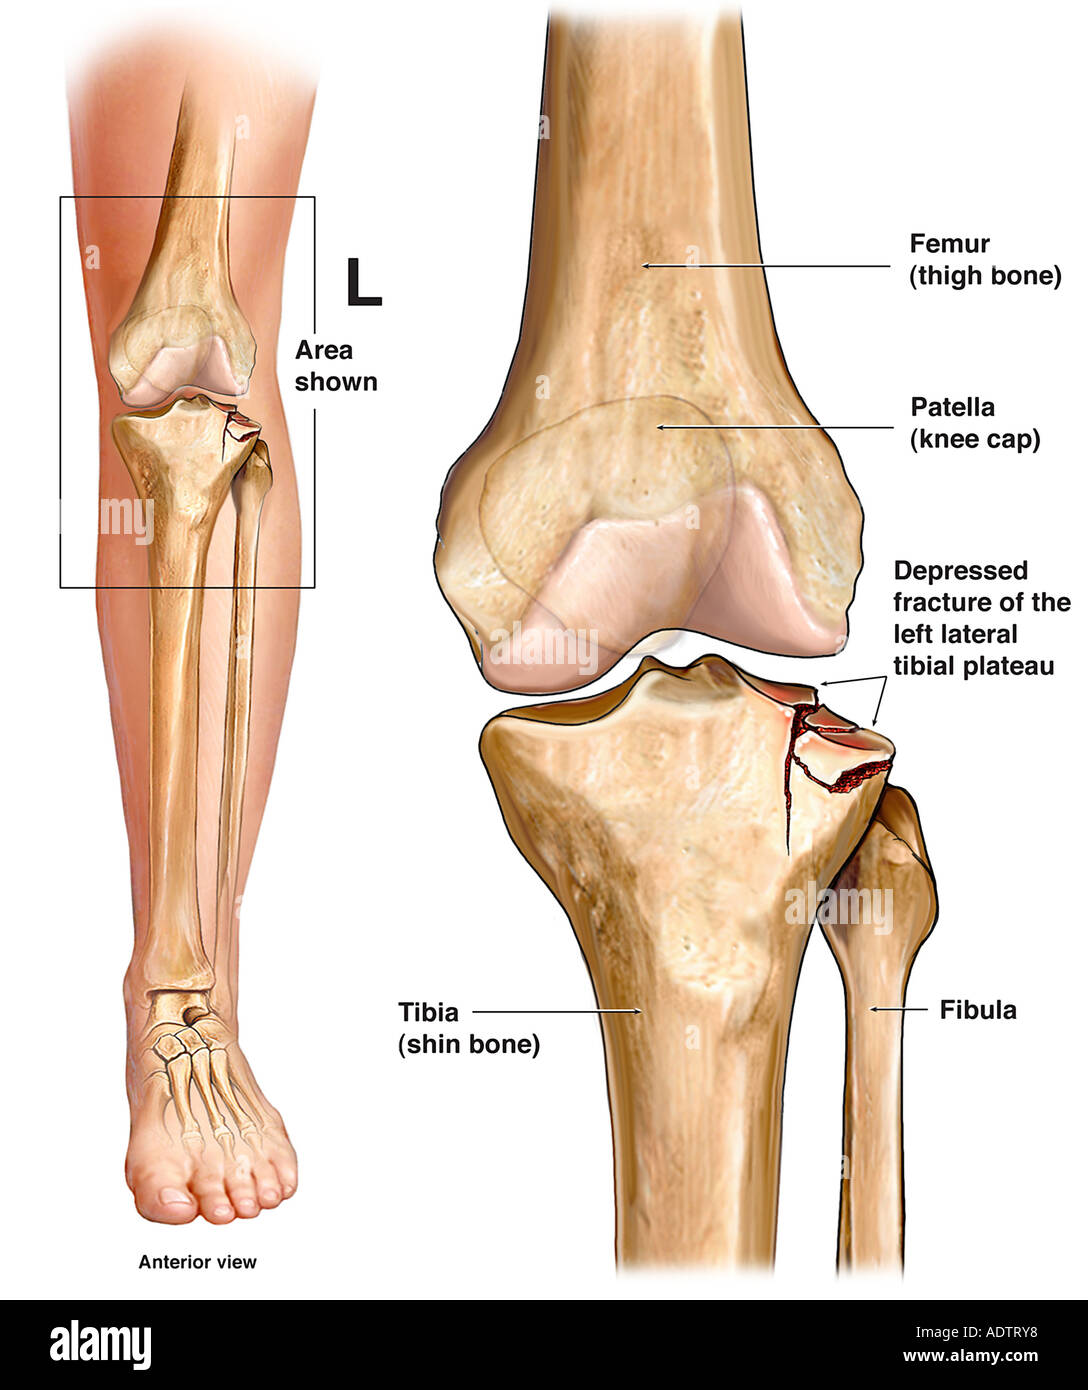 Left knee tibial plateau fracture stock photo 7710199 alamy left knee tibial plateau fracture ccuart